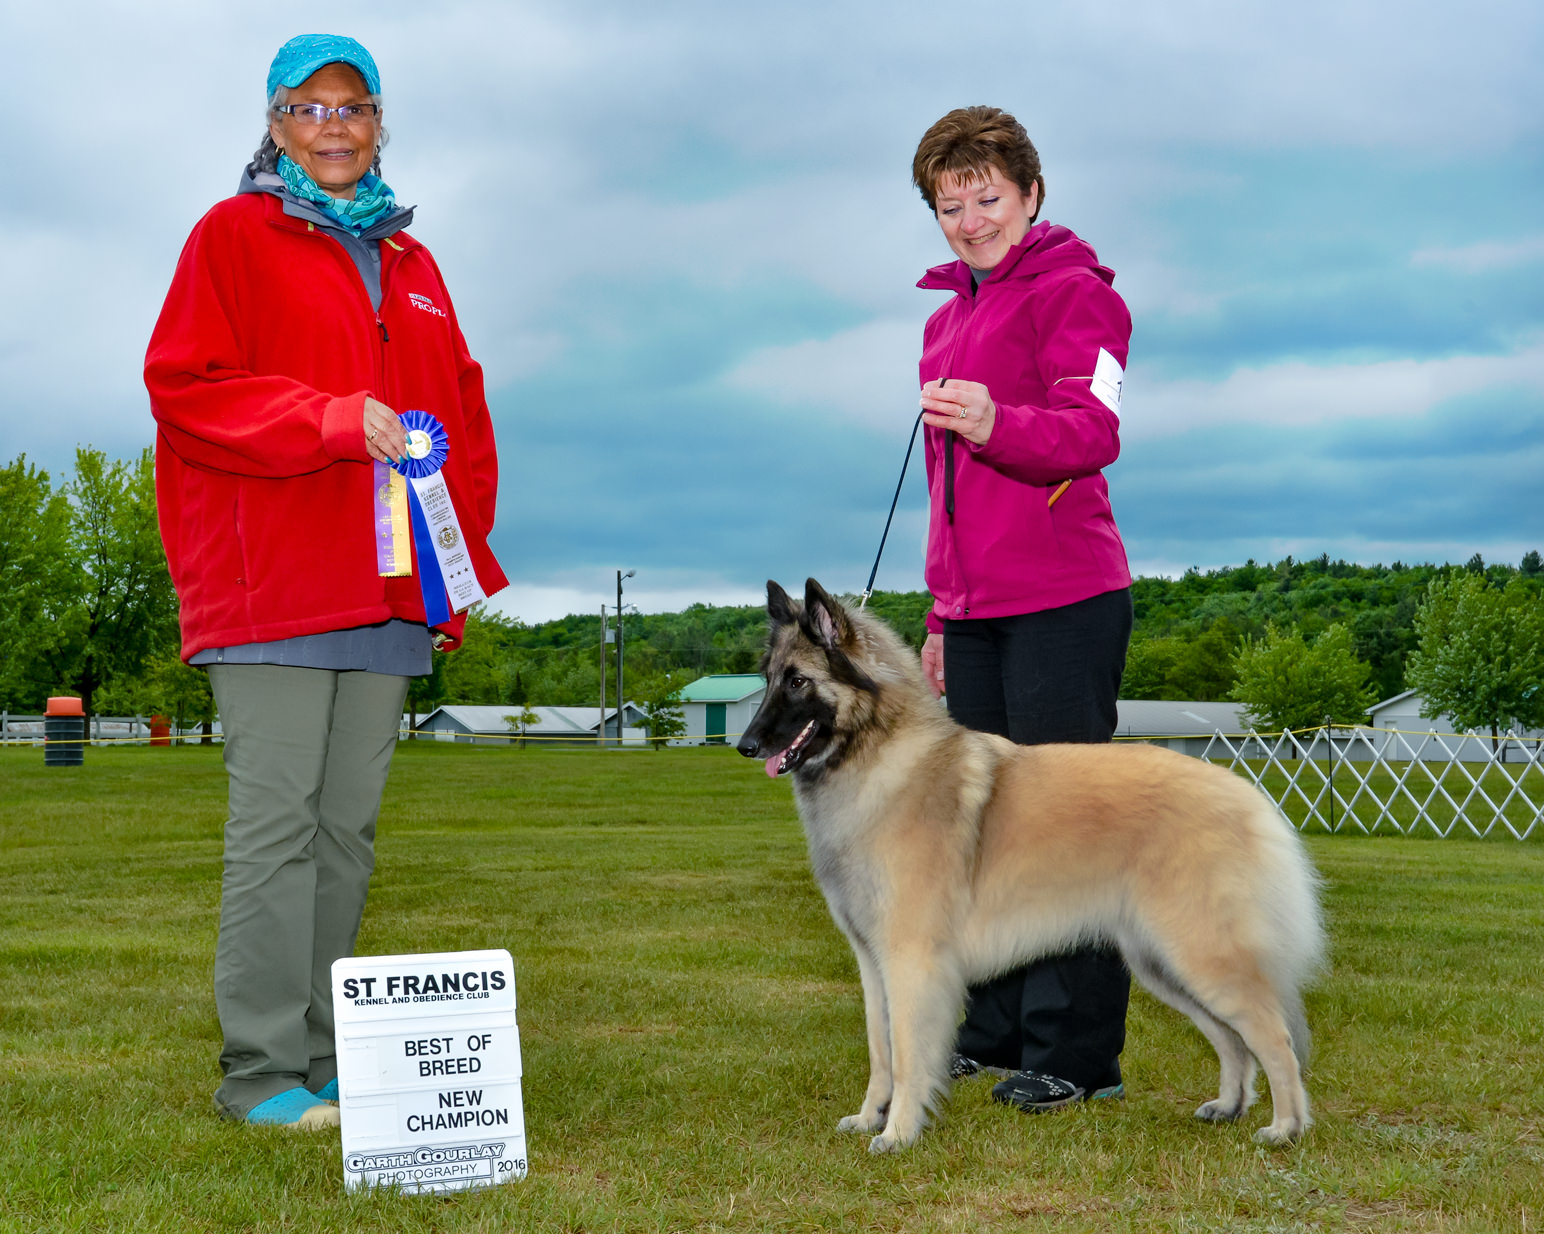 Jaina Best of Breed and new champion, June 2016